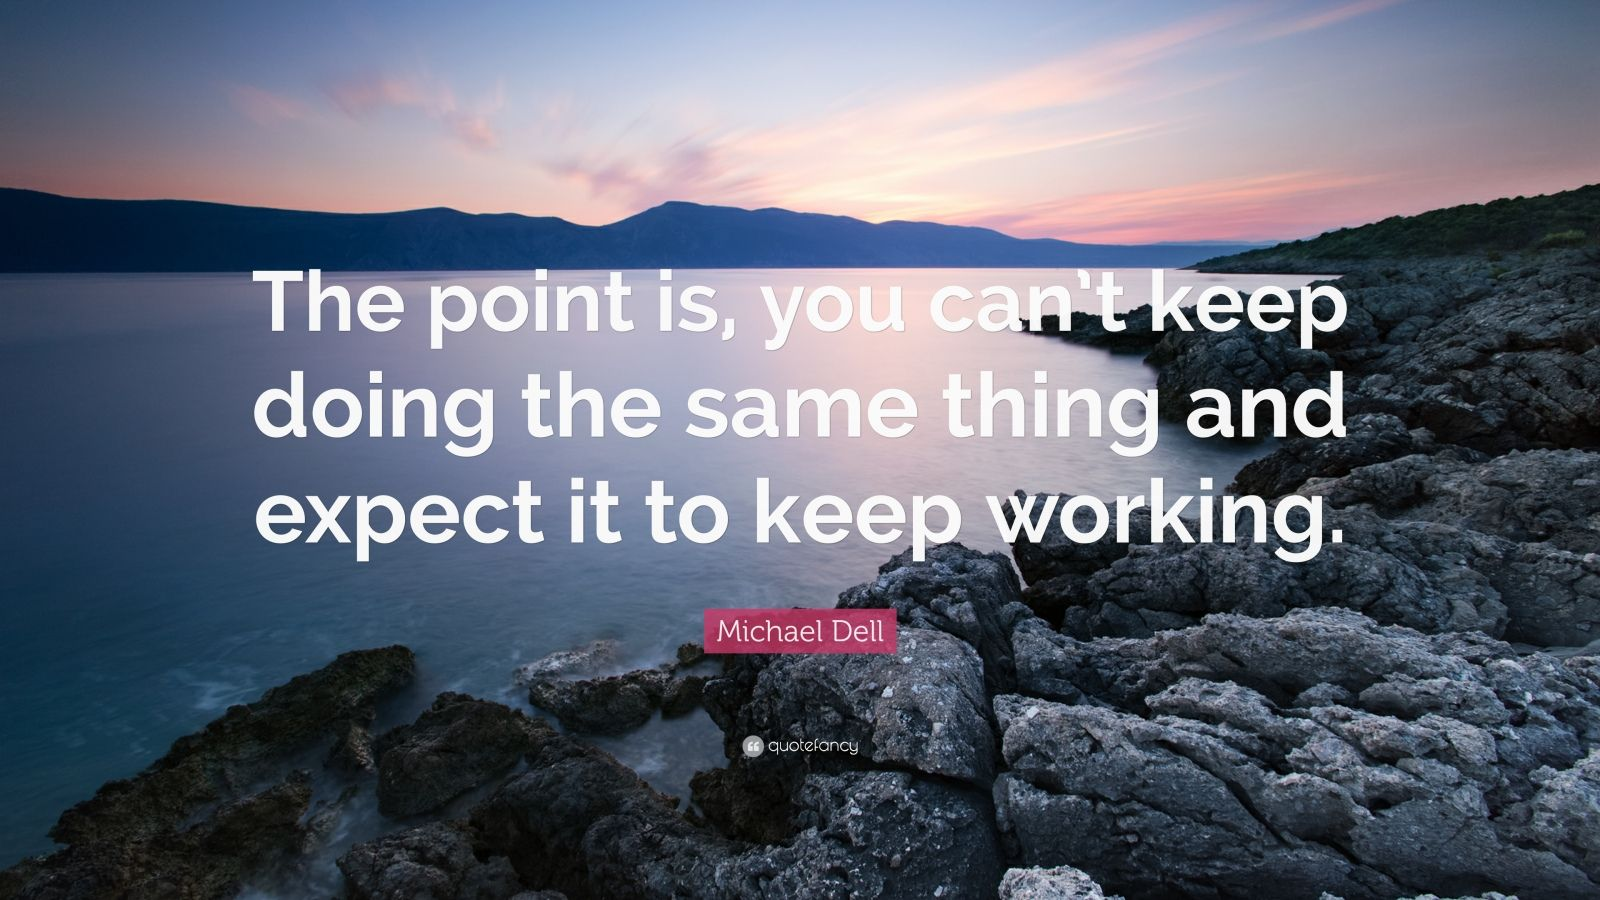 """Michael Dell Quote: """"The point is, you can't keep doing the same thing and expect it to keep working."""""""